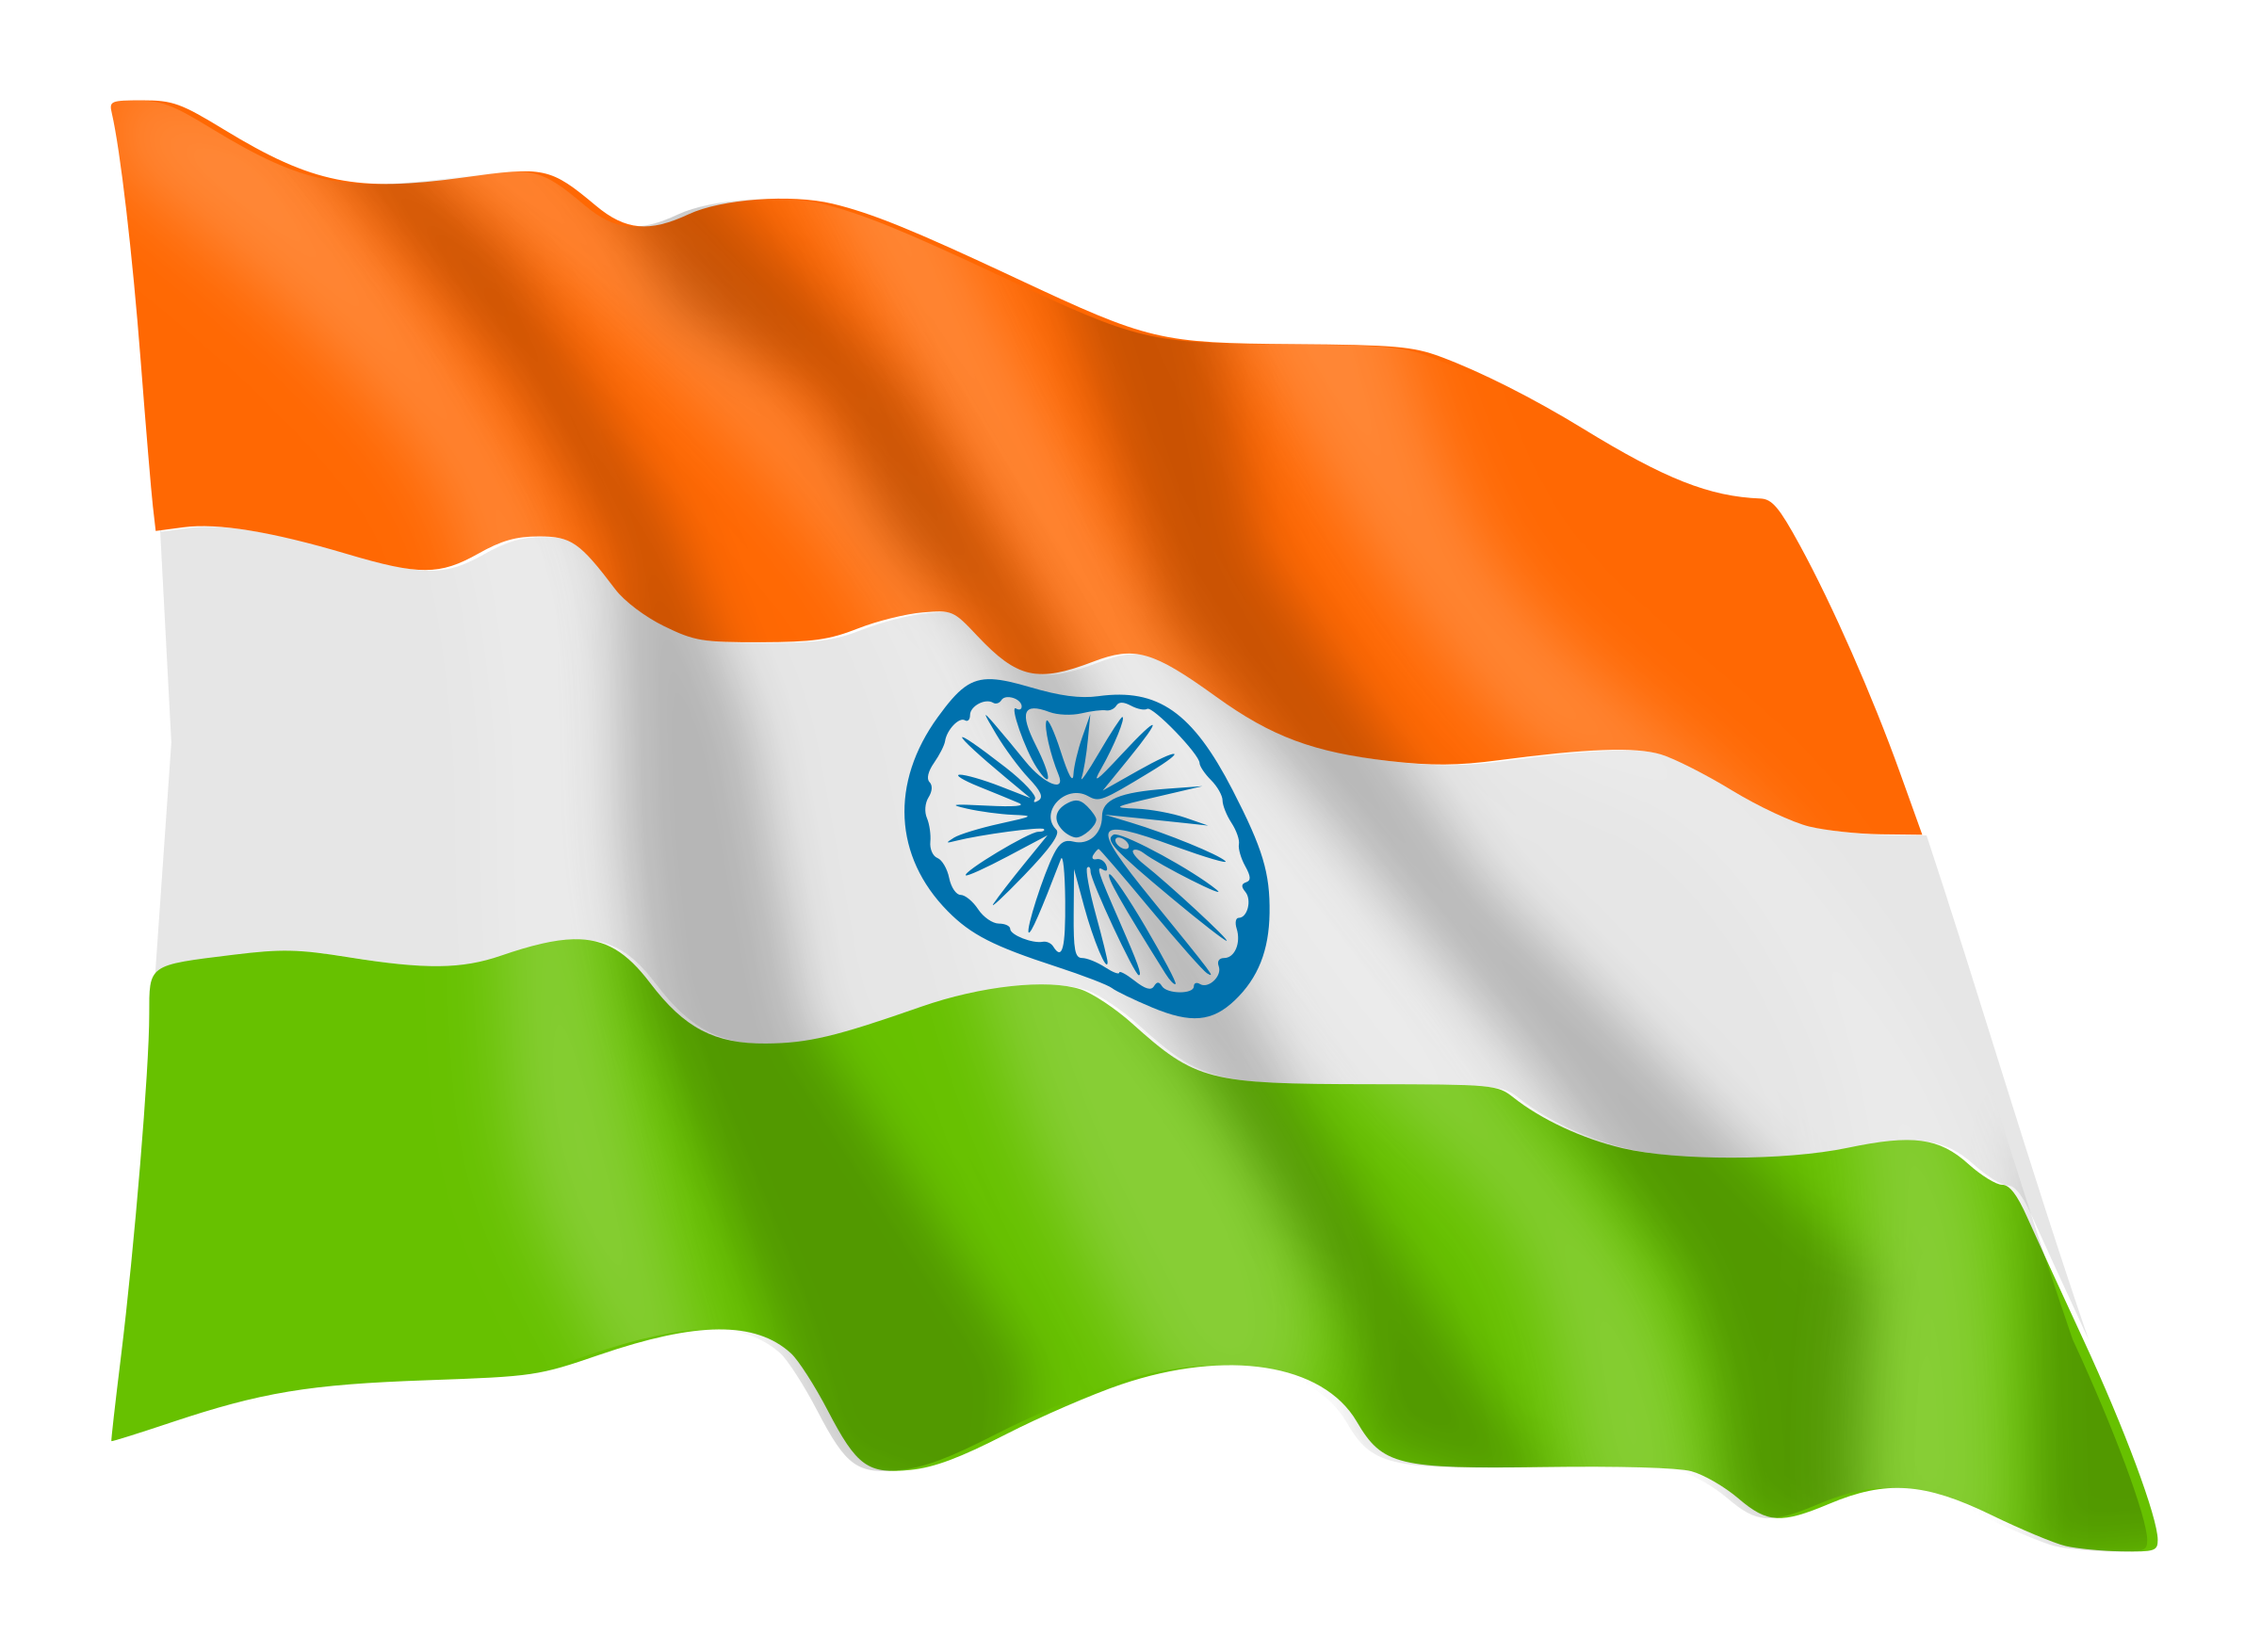 Indian national flag clipart images vector free library India Flag PNG Transparent Images | PNG All vector free library